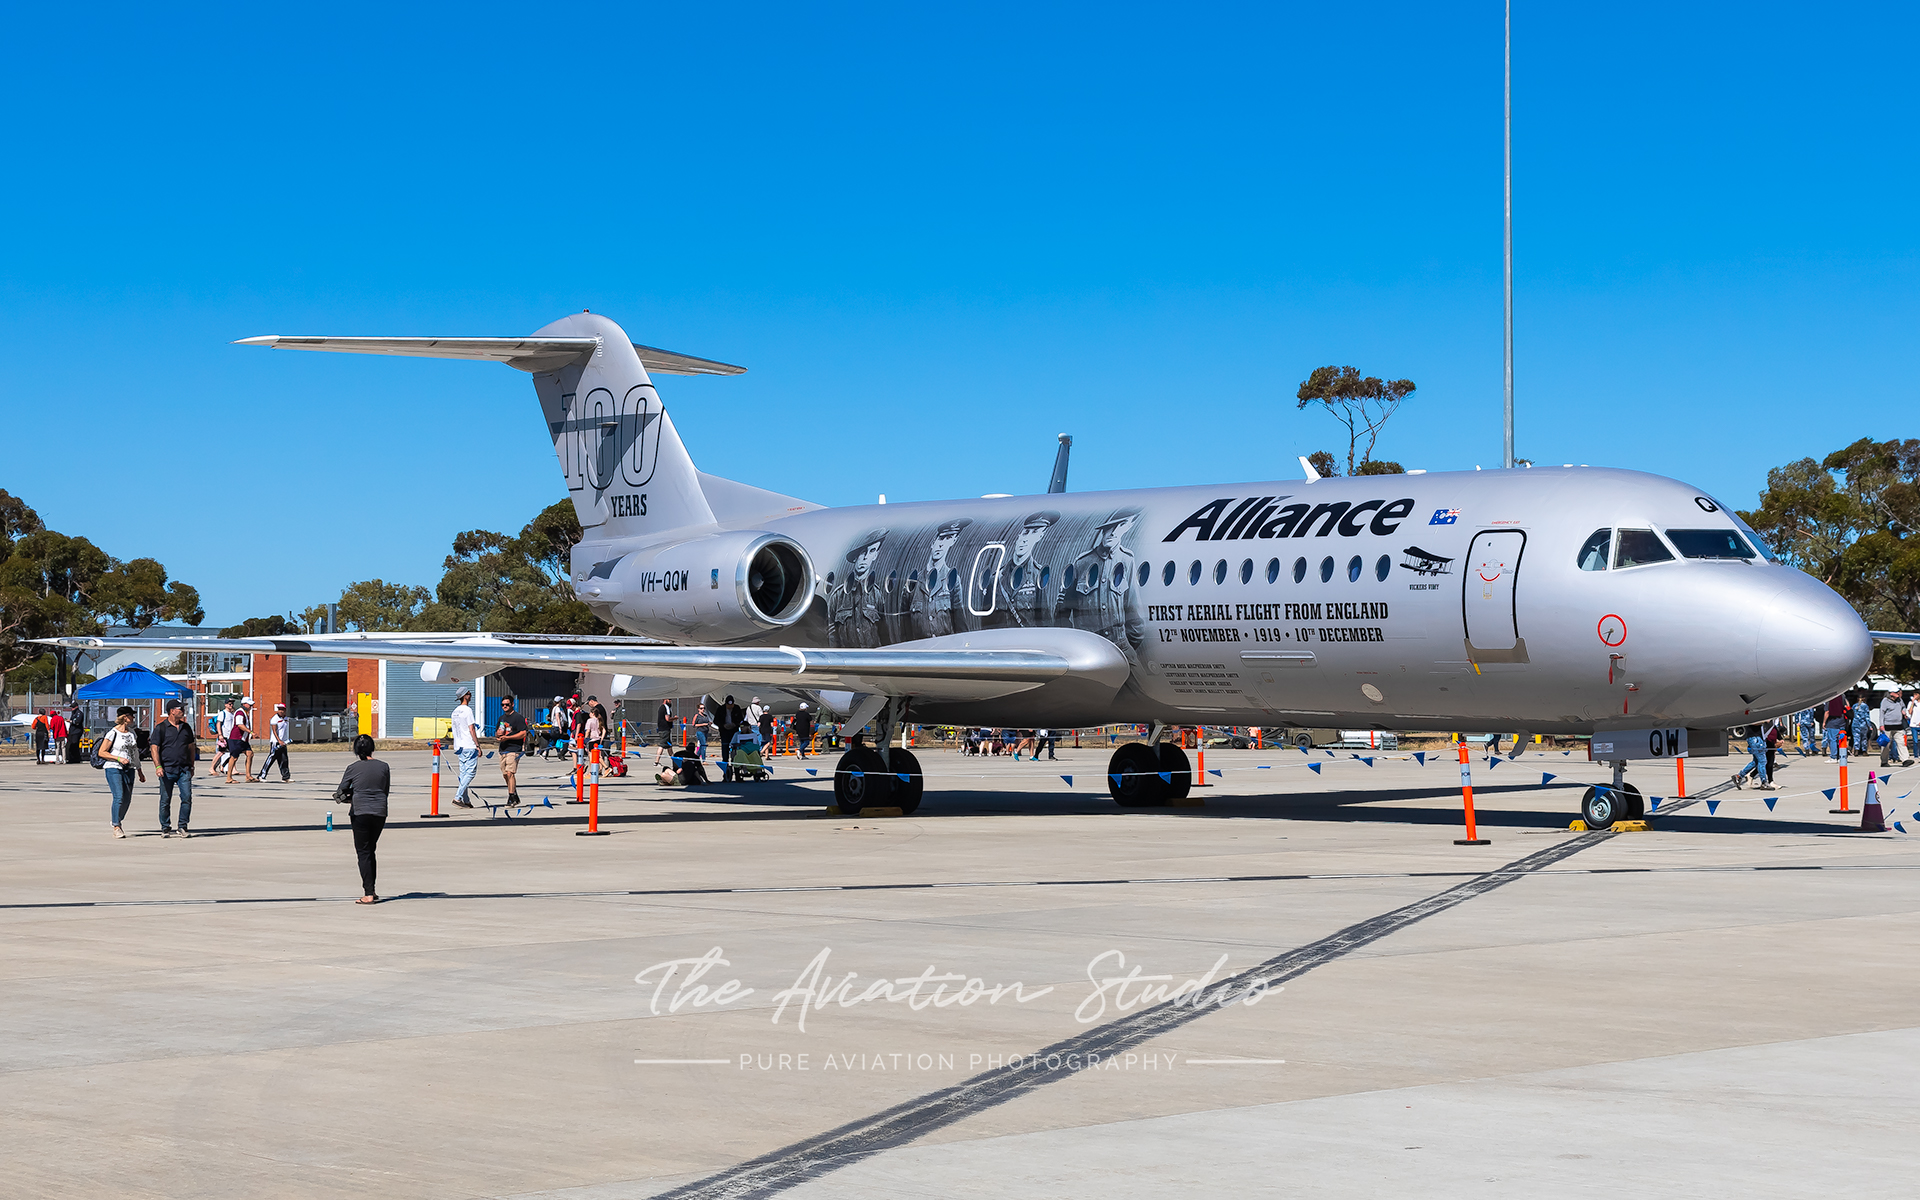 Edinburgh Airshow: The RAAF In The Defence State